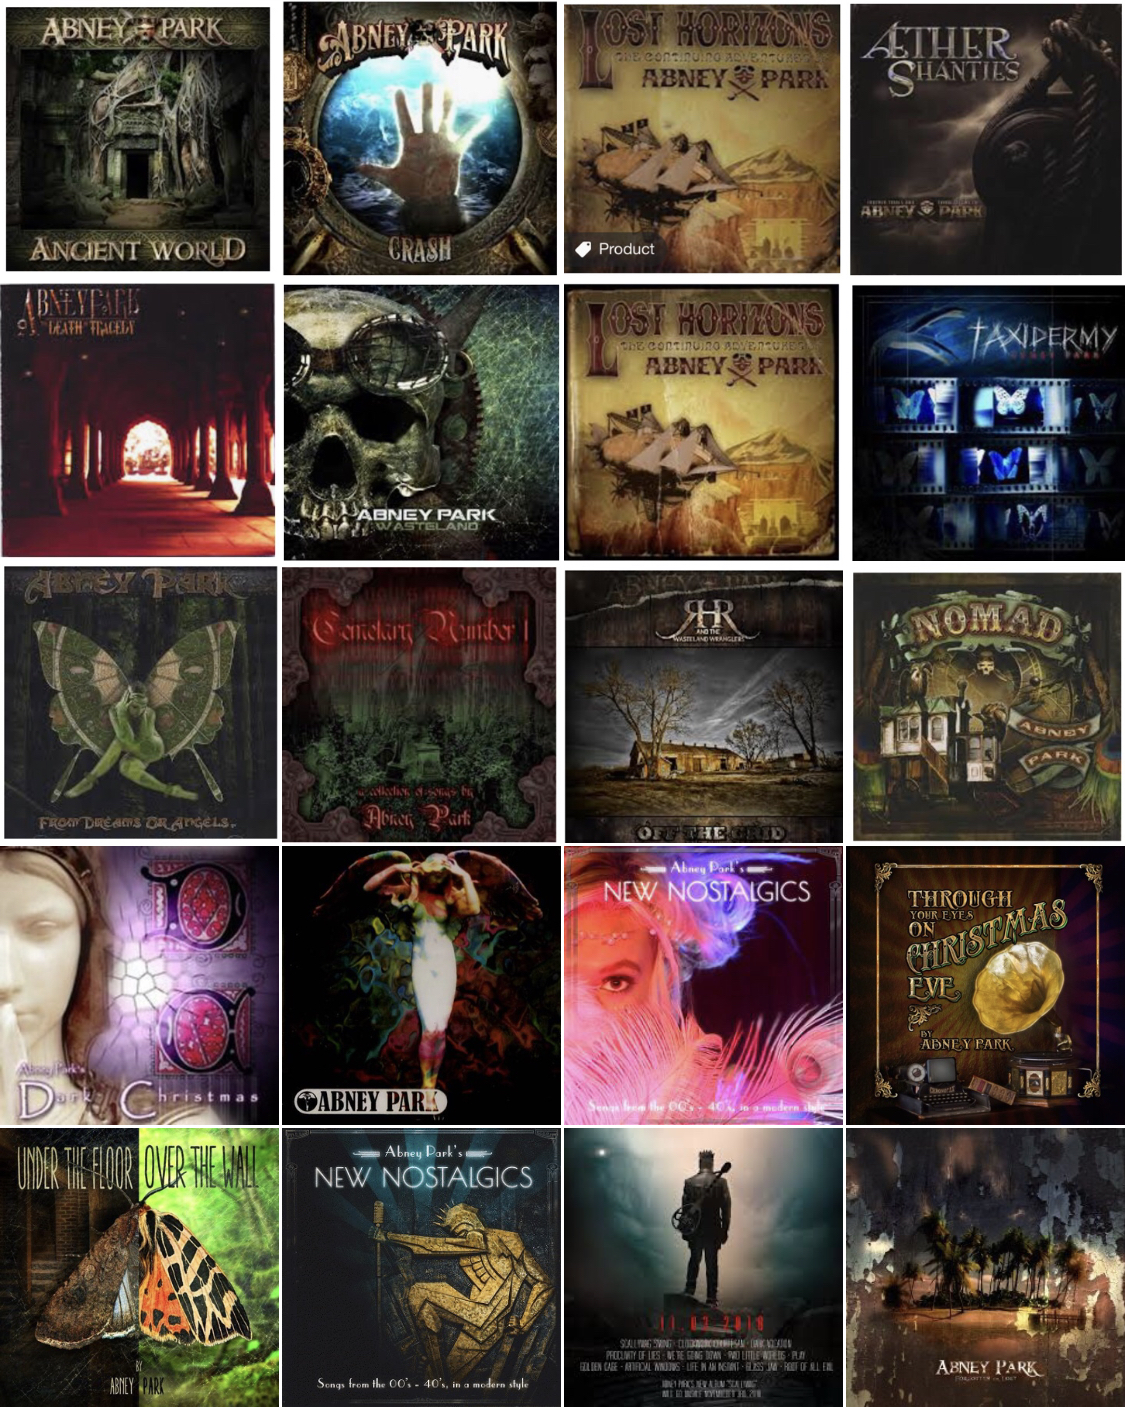 Abney Park Vault - Download All Songs - $100 00 : Abney Park